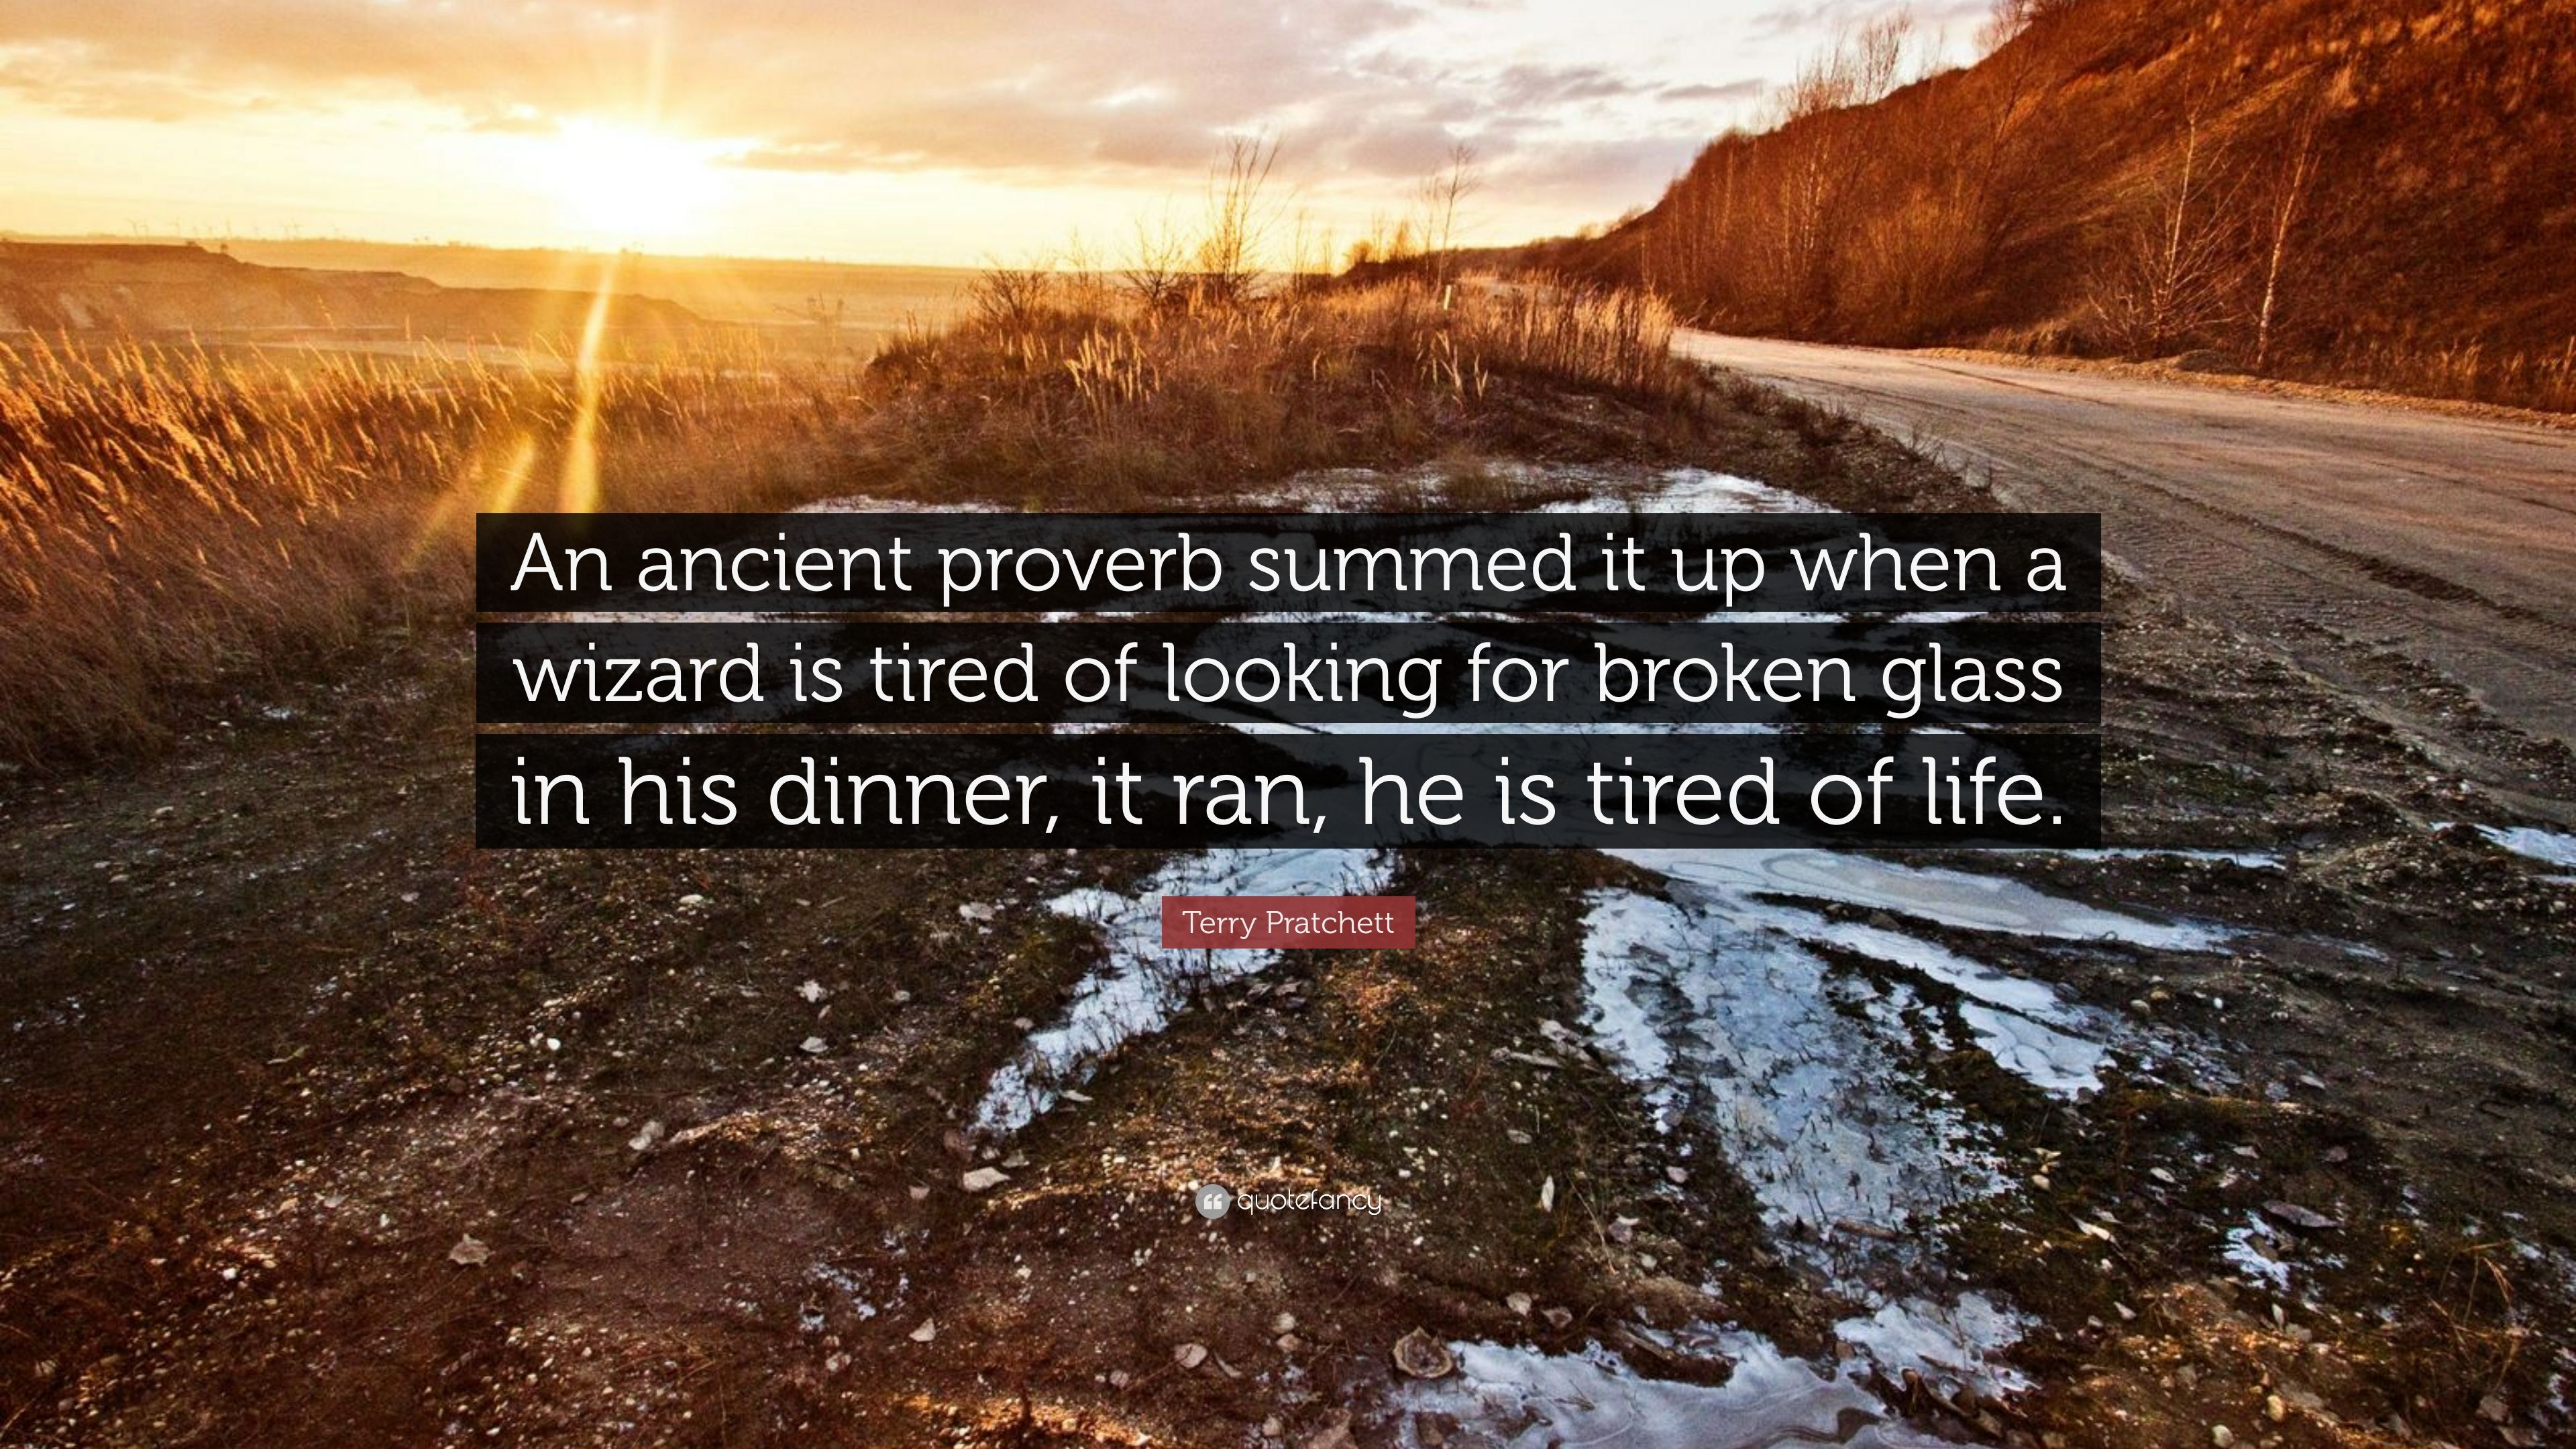 Terry Pratchett Quote An Ancient Proverb Summed It Up When A